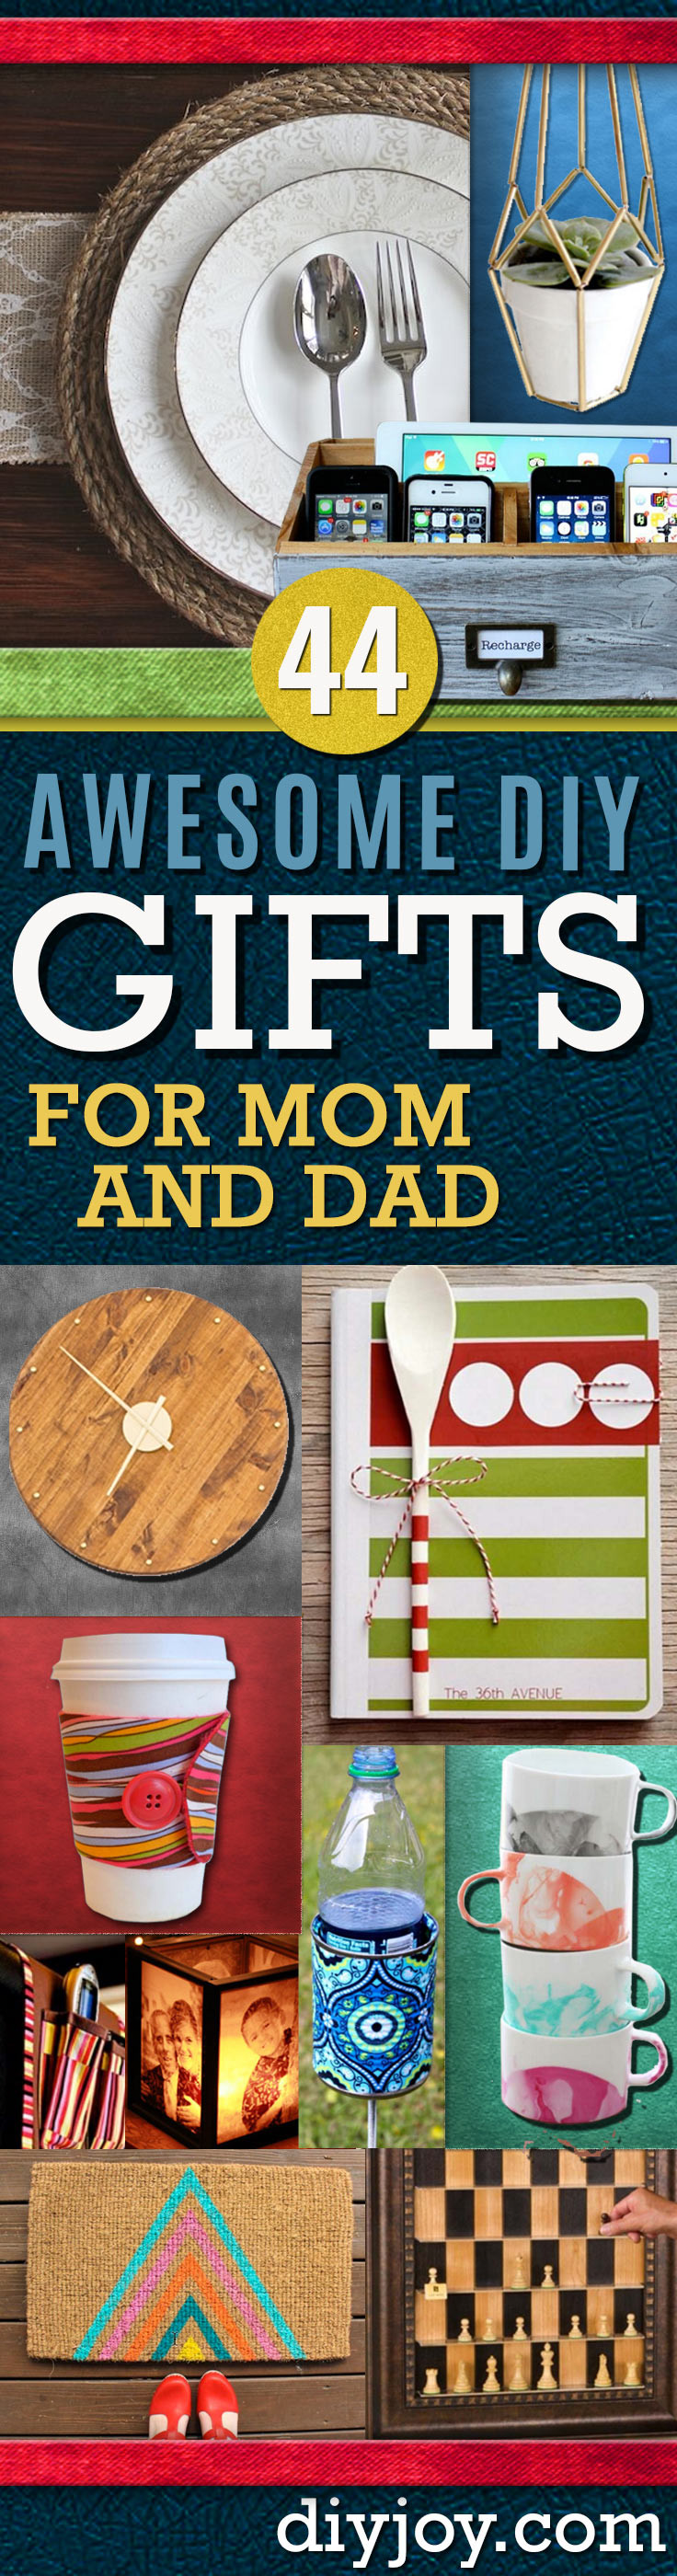 Best ideas about DIY Gifts For Dad . Save or Pin Awesome DIY Gift Ideas Mom and Dad Will Love Now.